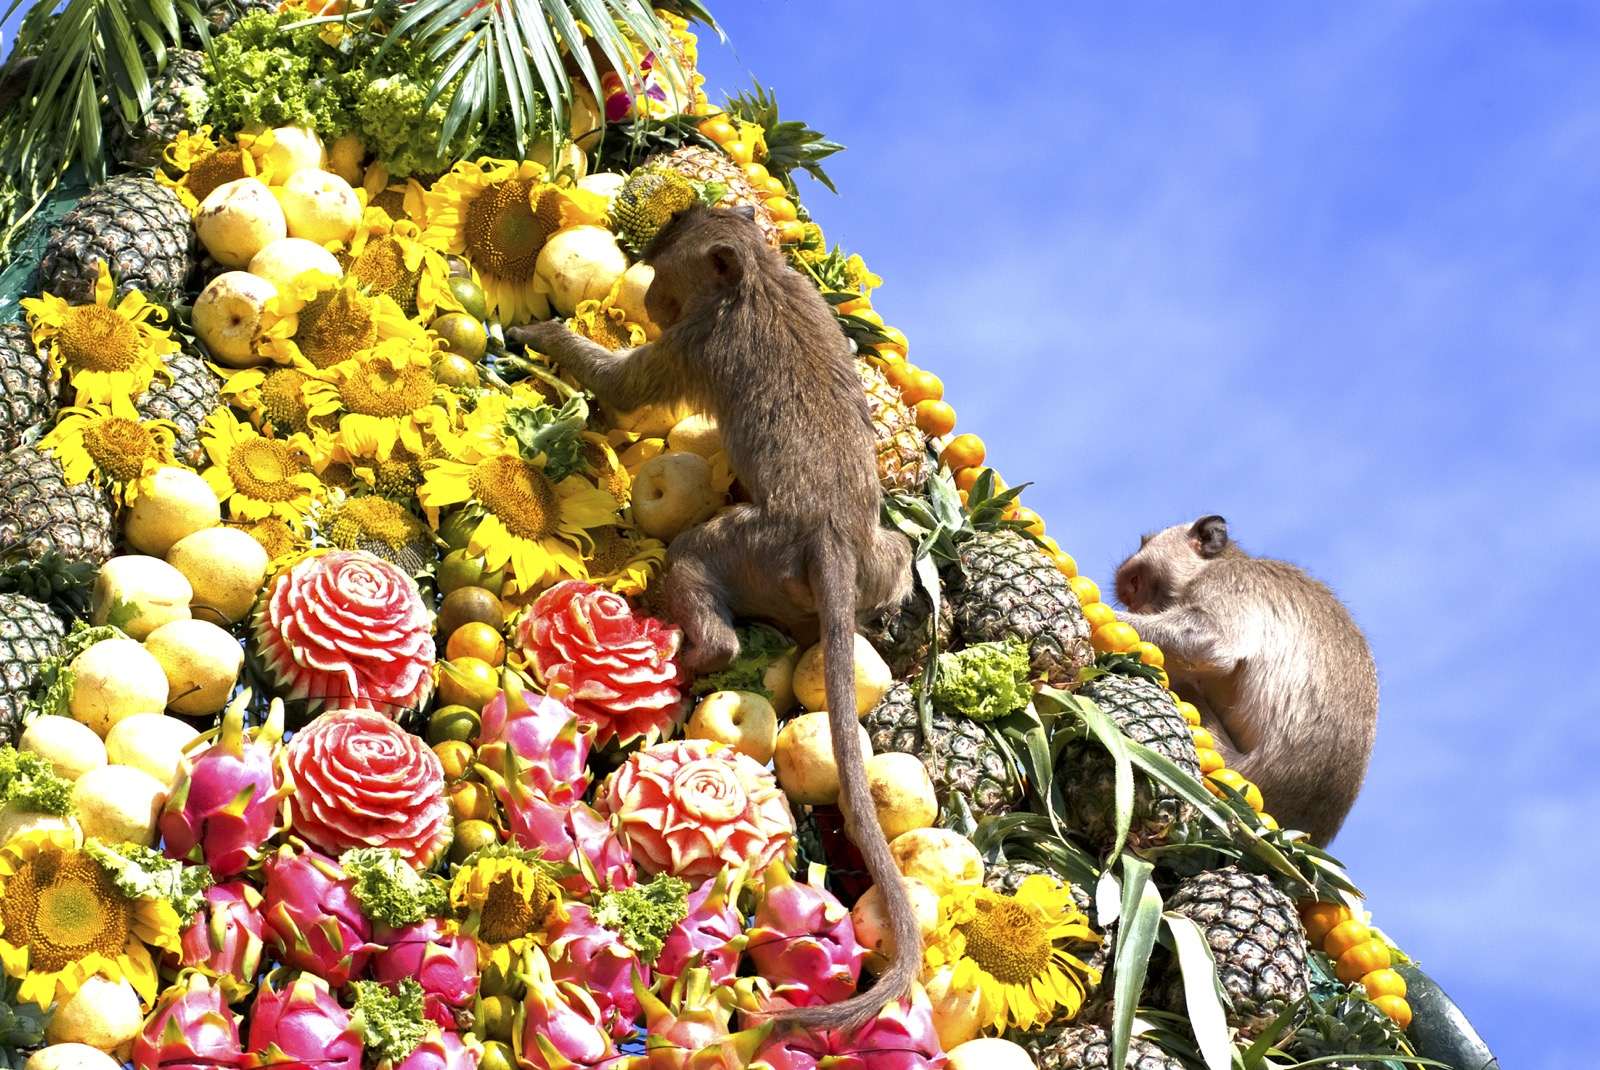 Monkey buffet in Thailand